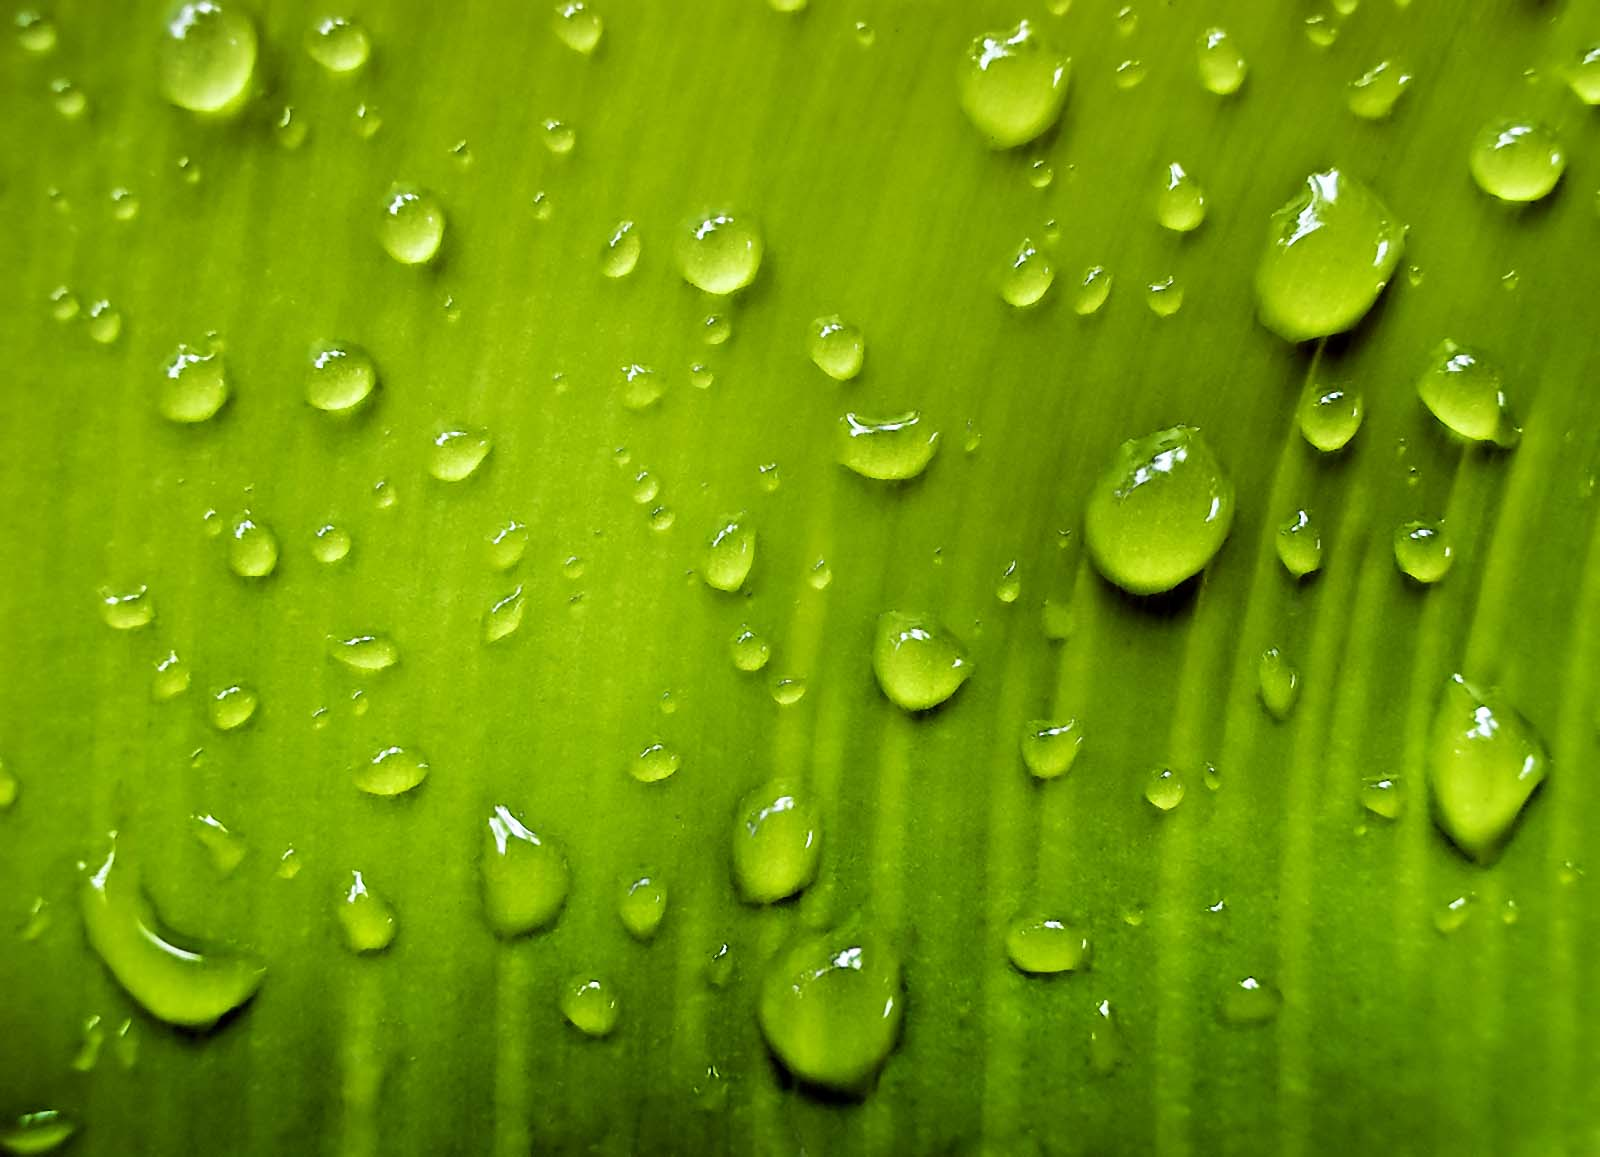 drops water leaf, leaf green, water drops texture, texture